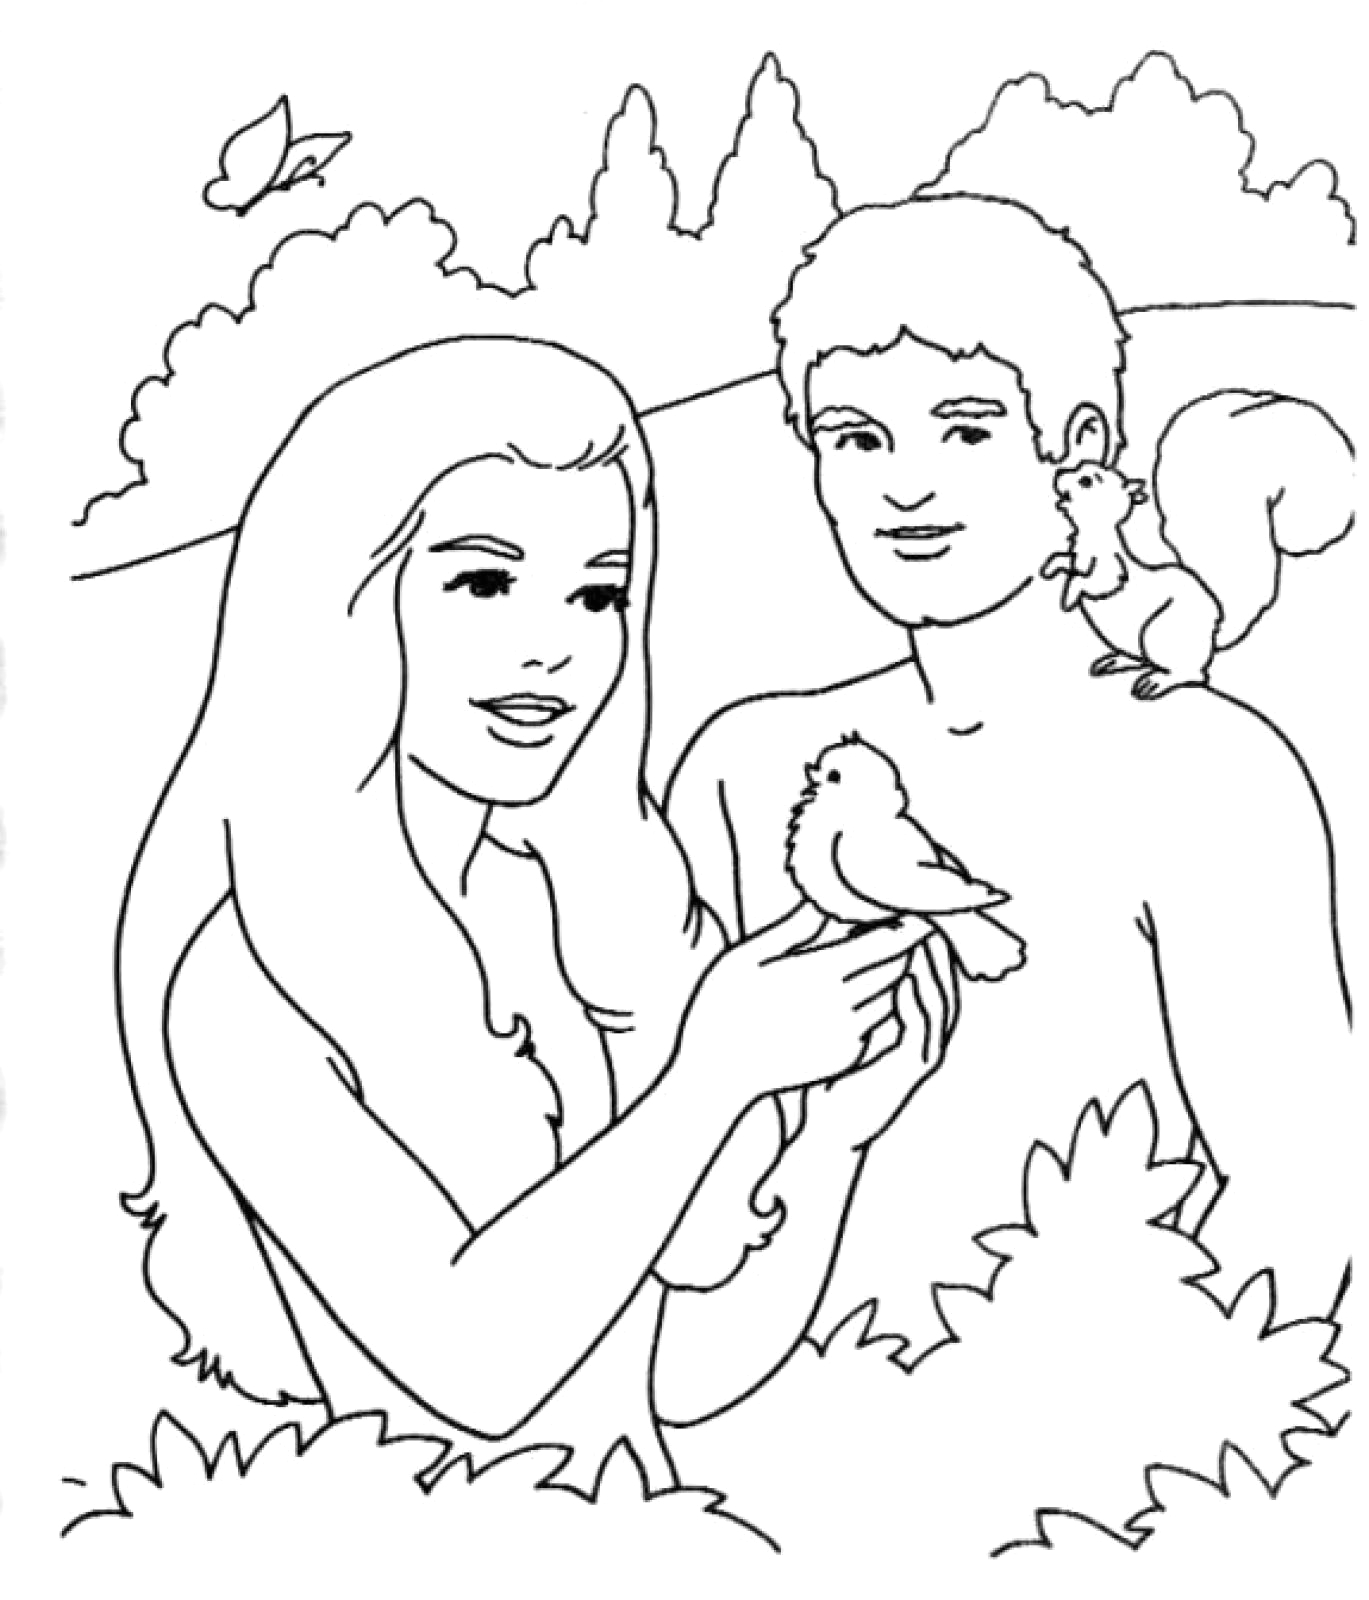 Free Coloring Pages Of Adam and Eve Free Printable Adam and Eve Coloring Pages for Kids Best